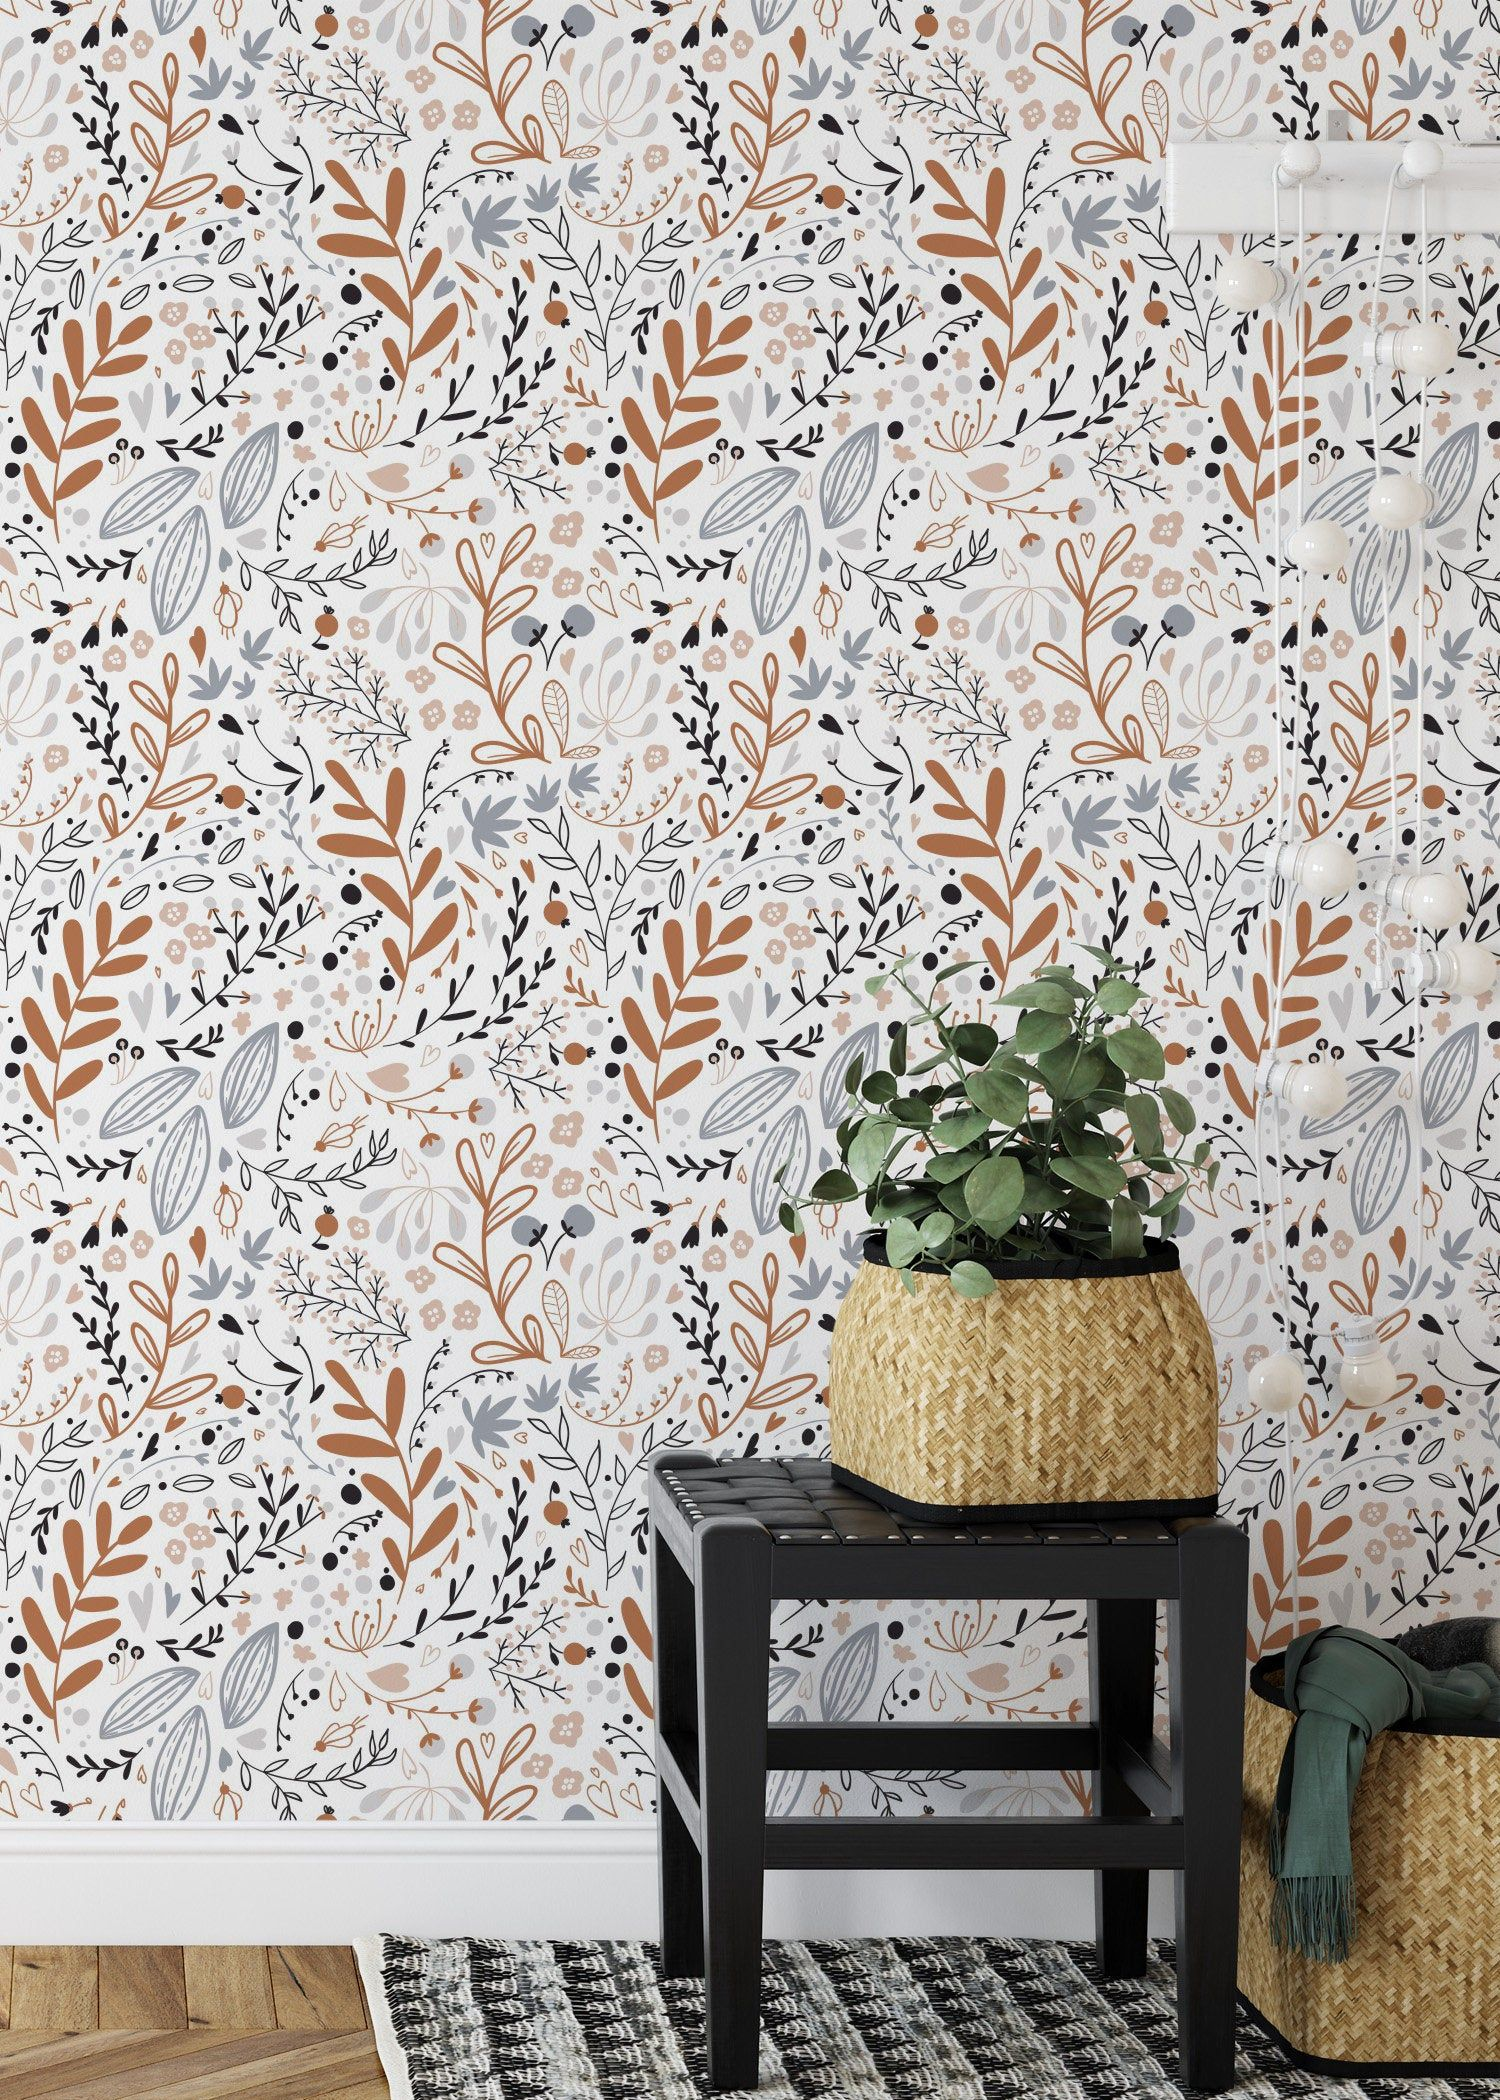 Removable Wallpaper Custom Wallpaper Peel And Stick Tropical Etsy Tropical Wall Decor Removable Wallpaper Custom Wallpaper